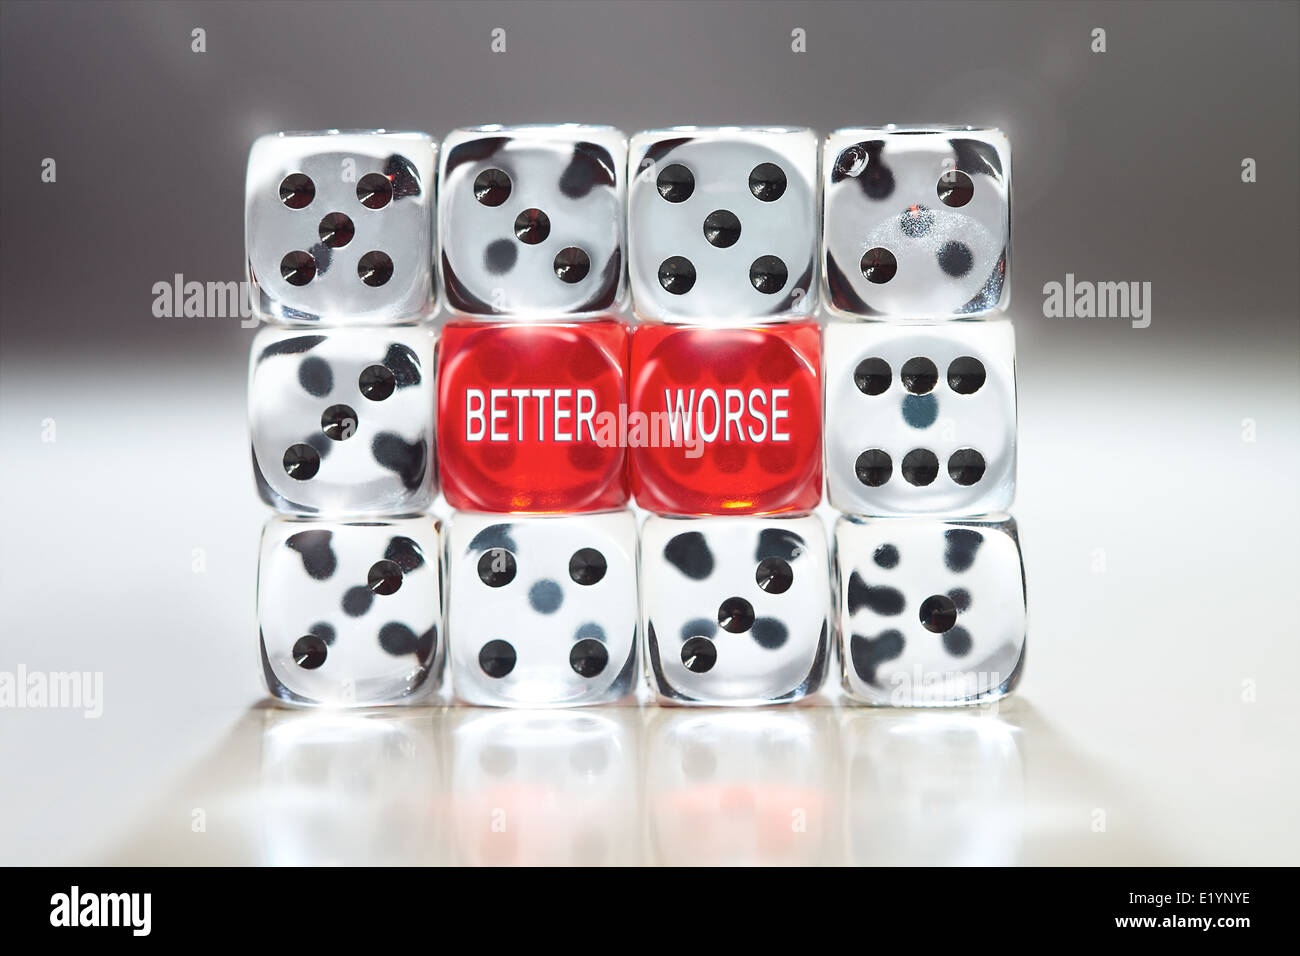 The words, Better and Worse on two red dice Supported by clear dice. Strength, unity And Clarity concept. Stock Photo